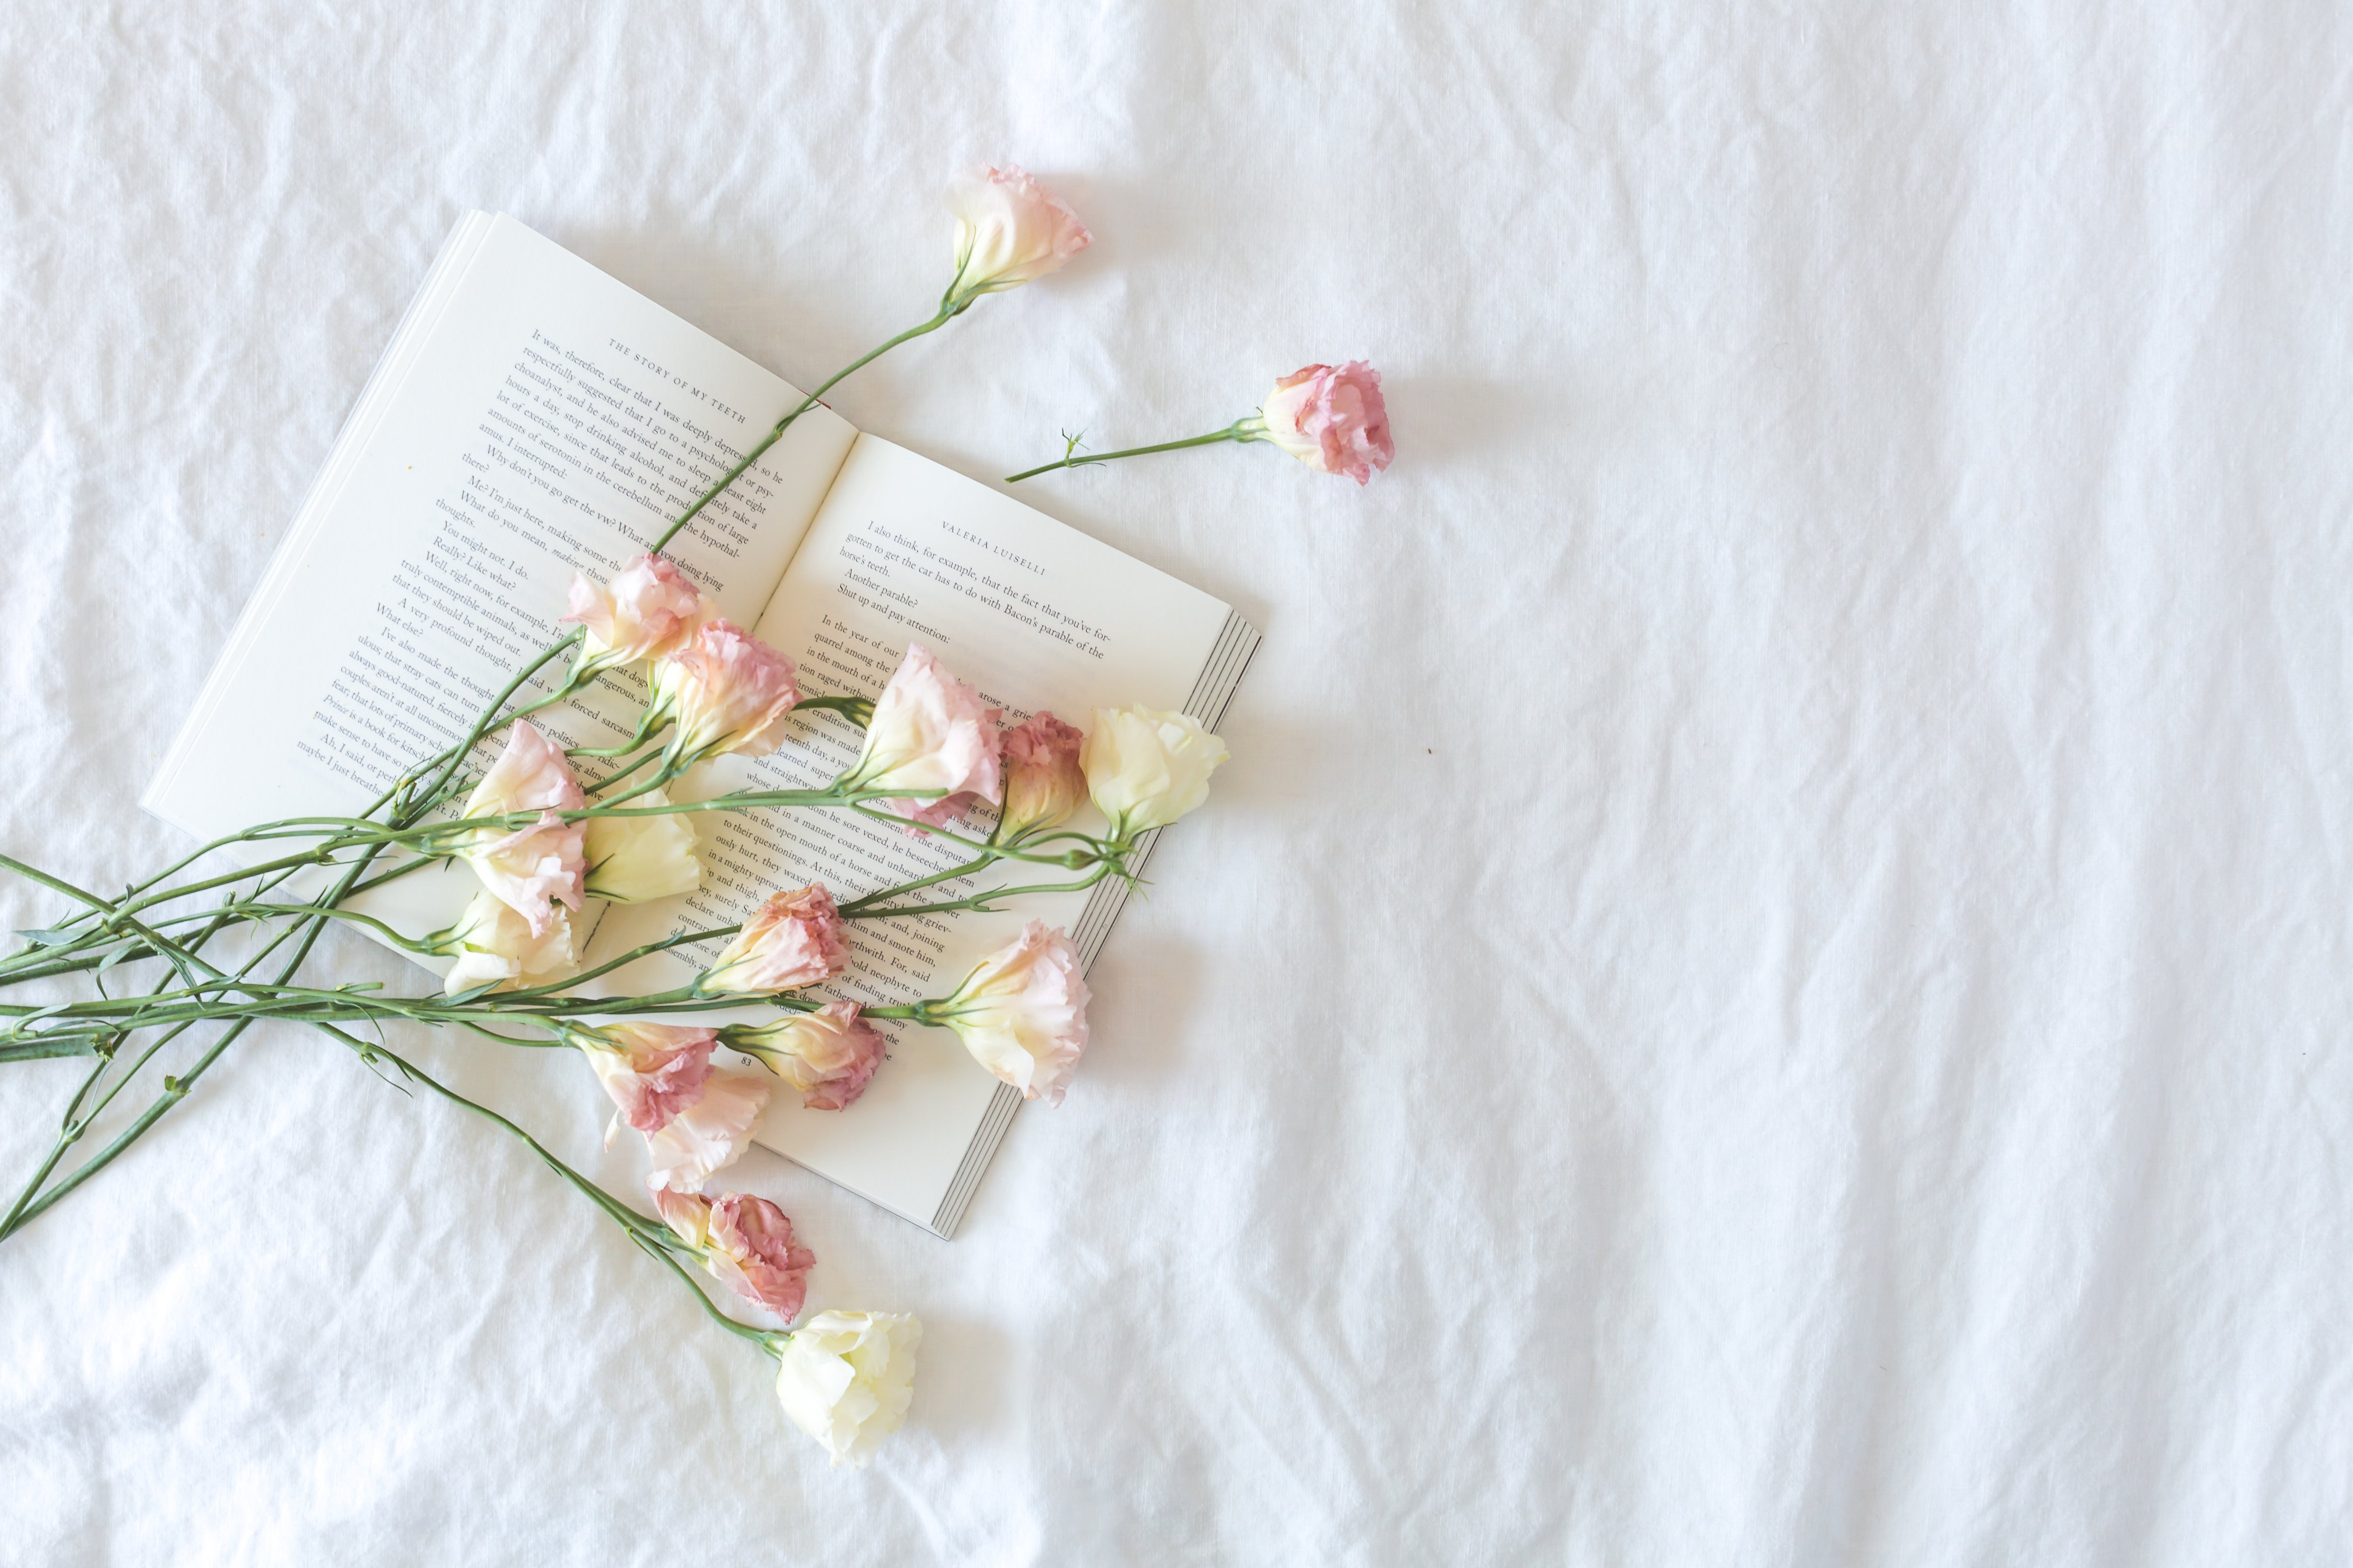 bed-with-book-and-flowers